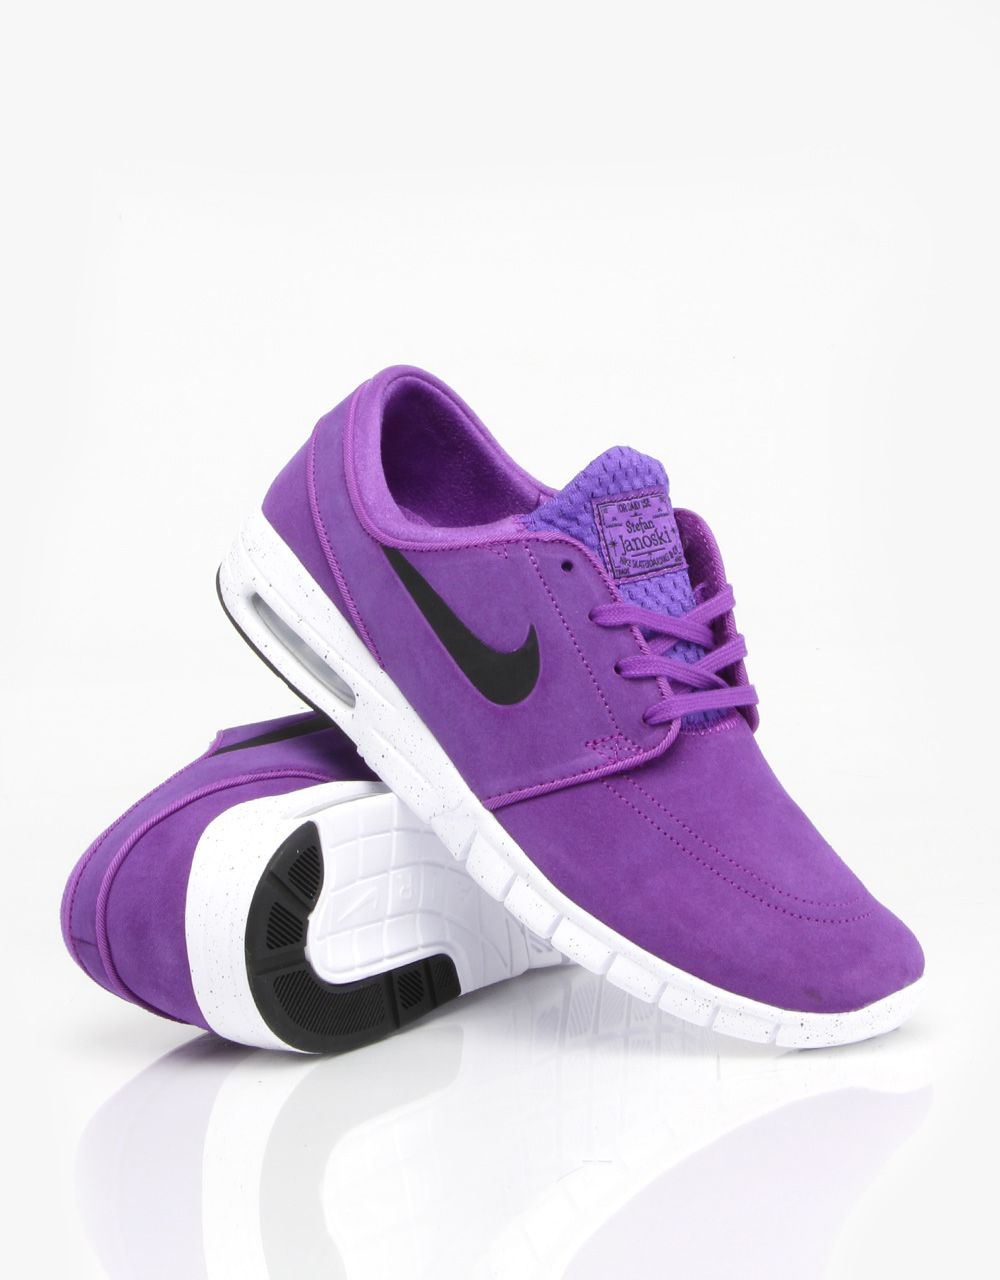 Nike SB Stefan Janoski Max L Shoes - Hyper Grape/Black/White - RouteOne